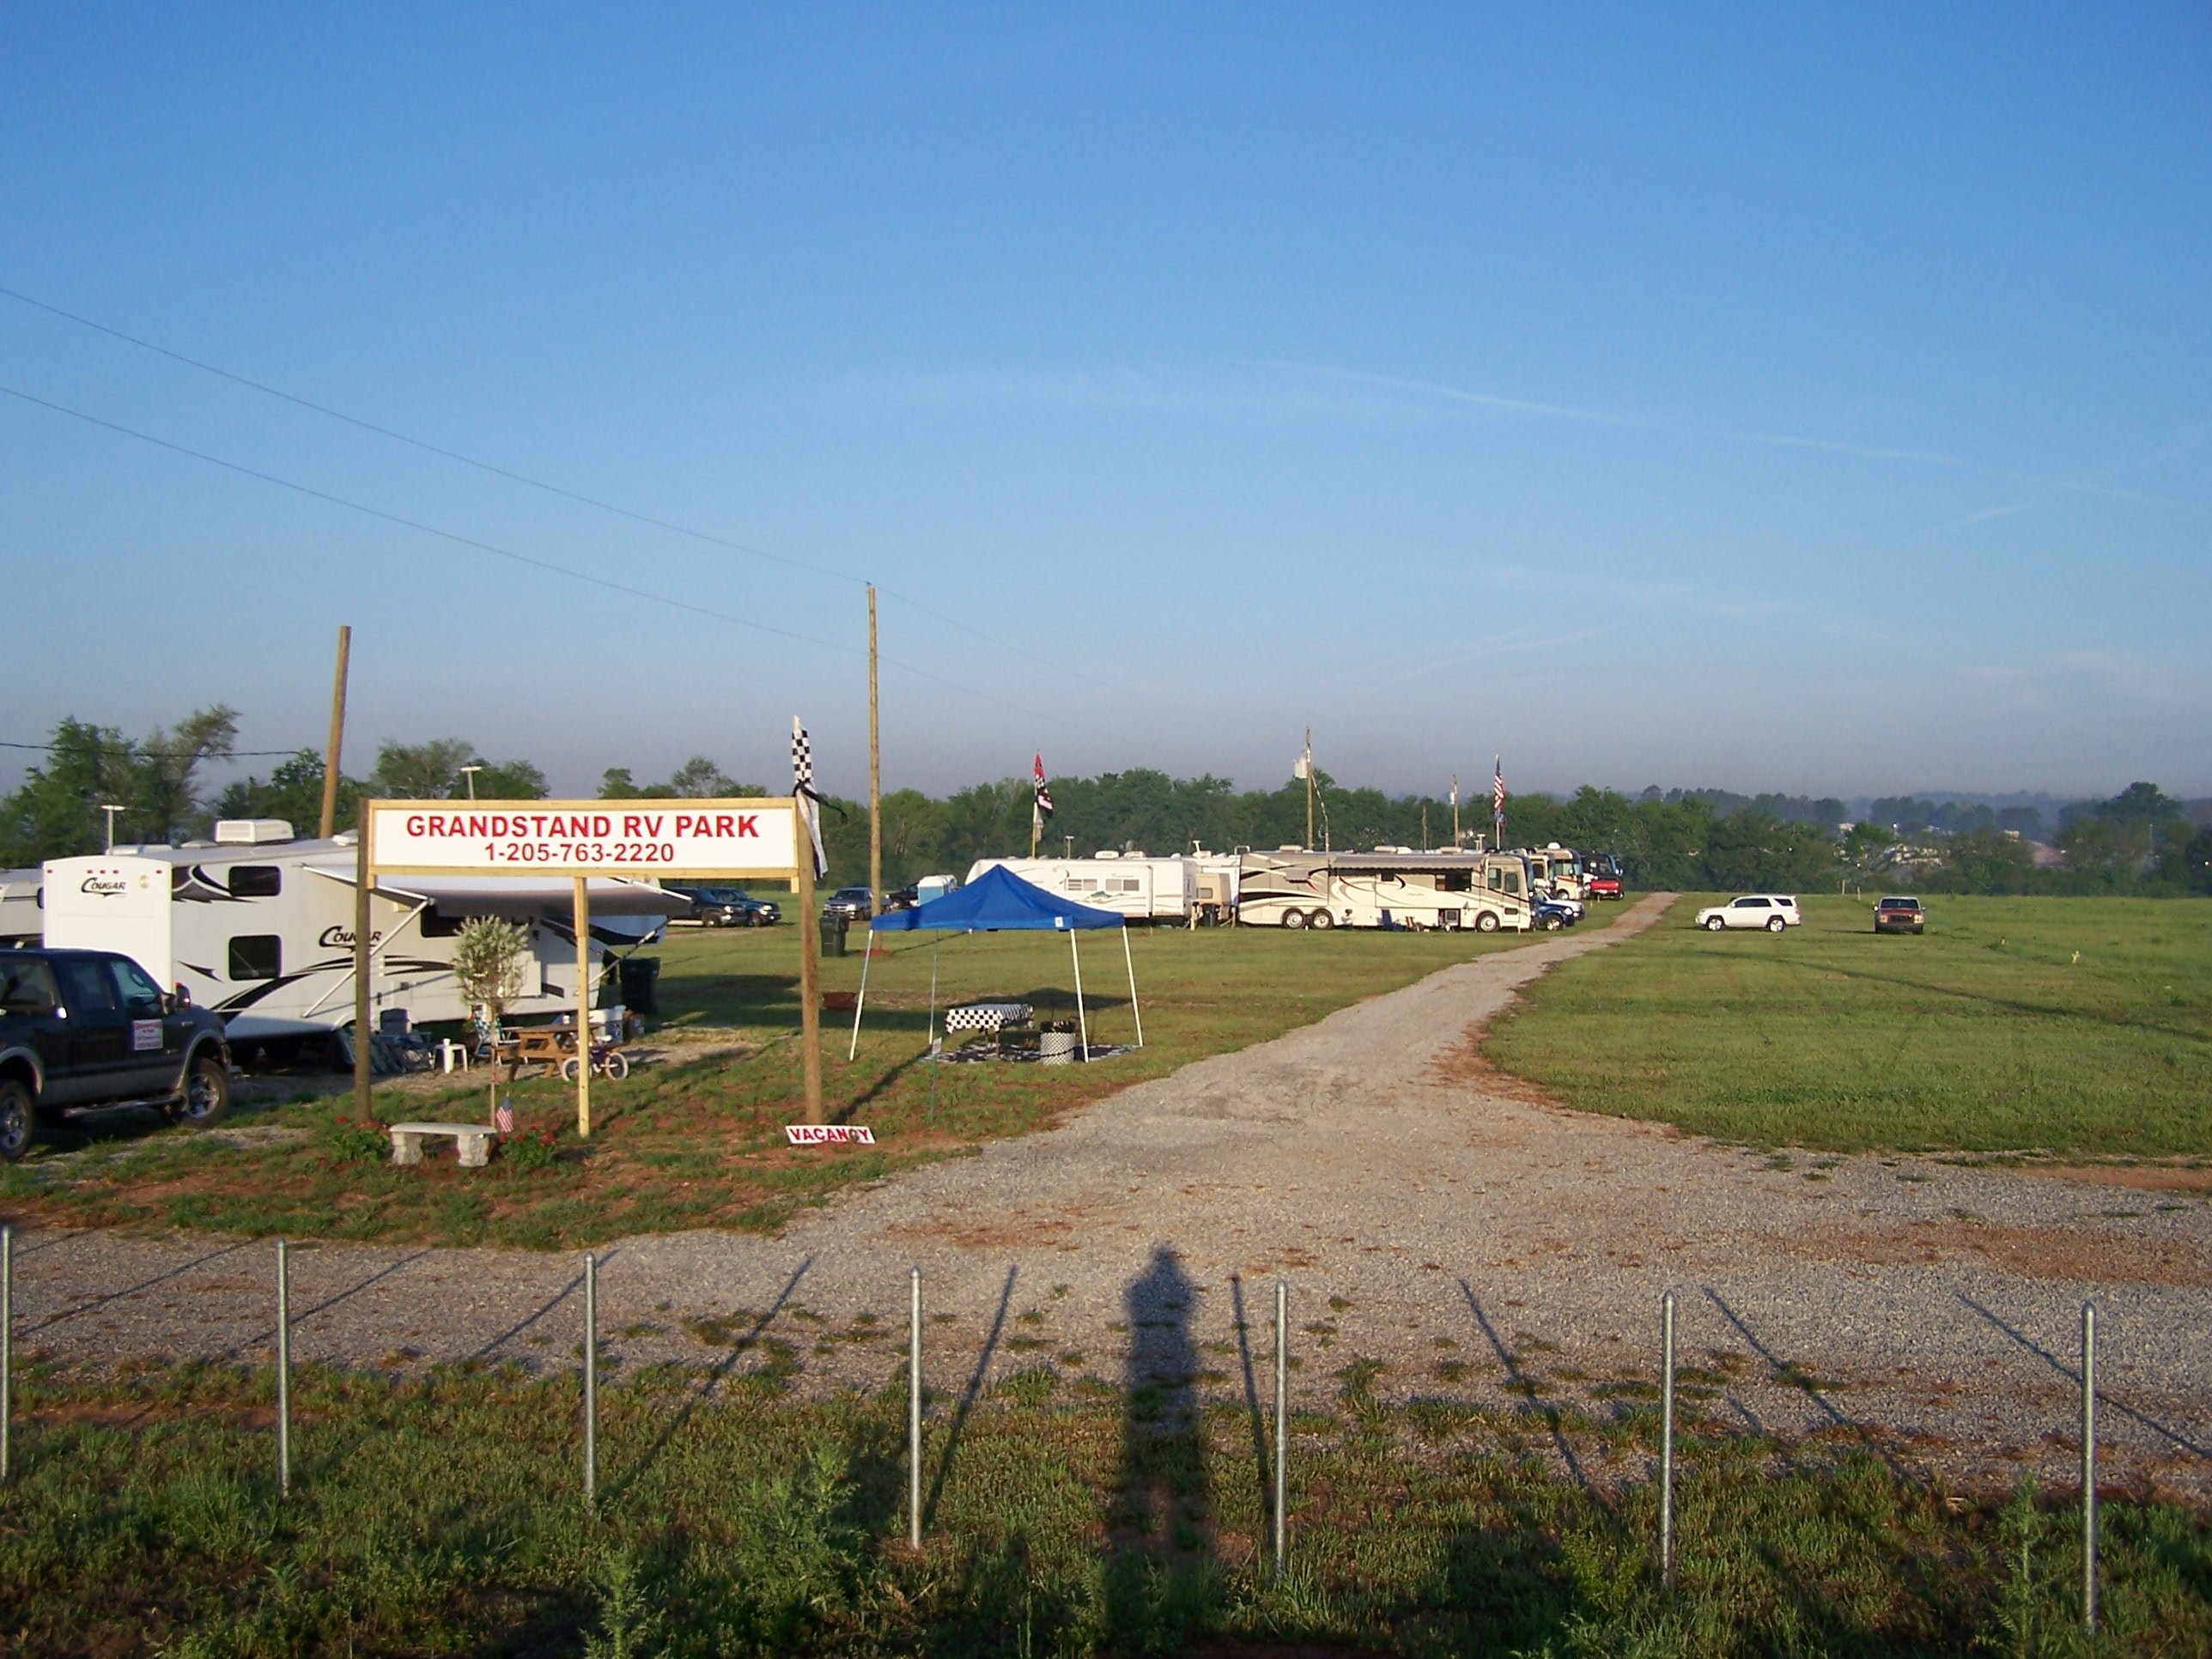 GRAND STAND RV PARK